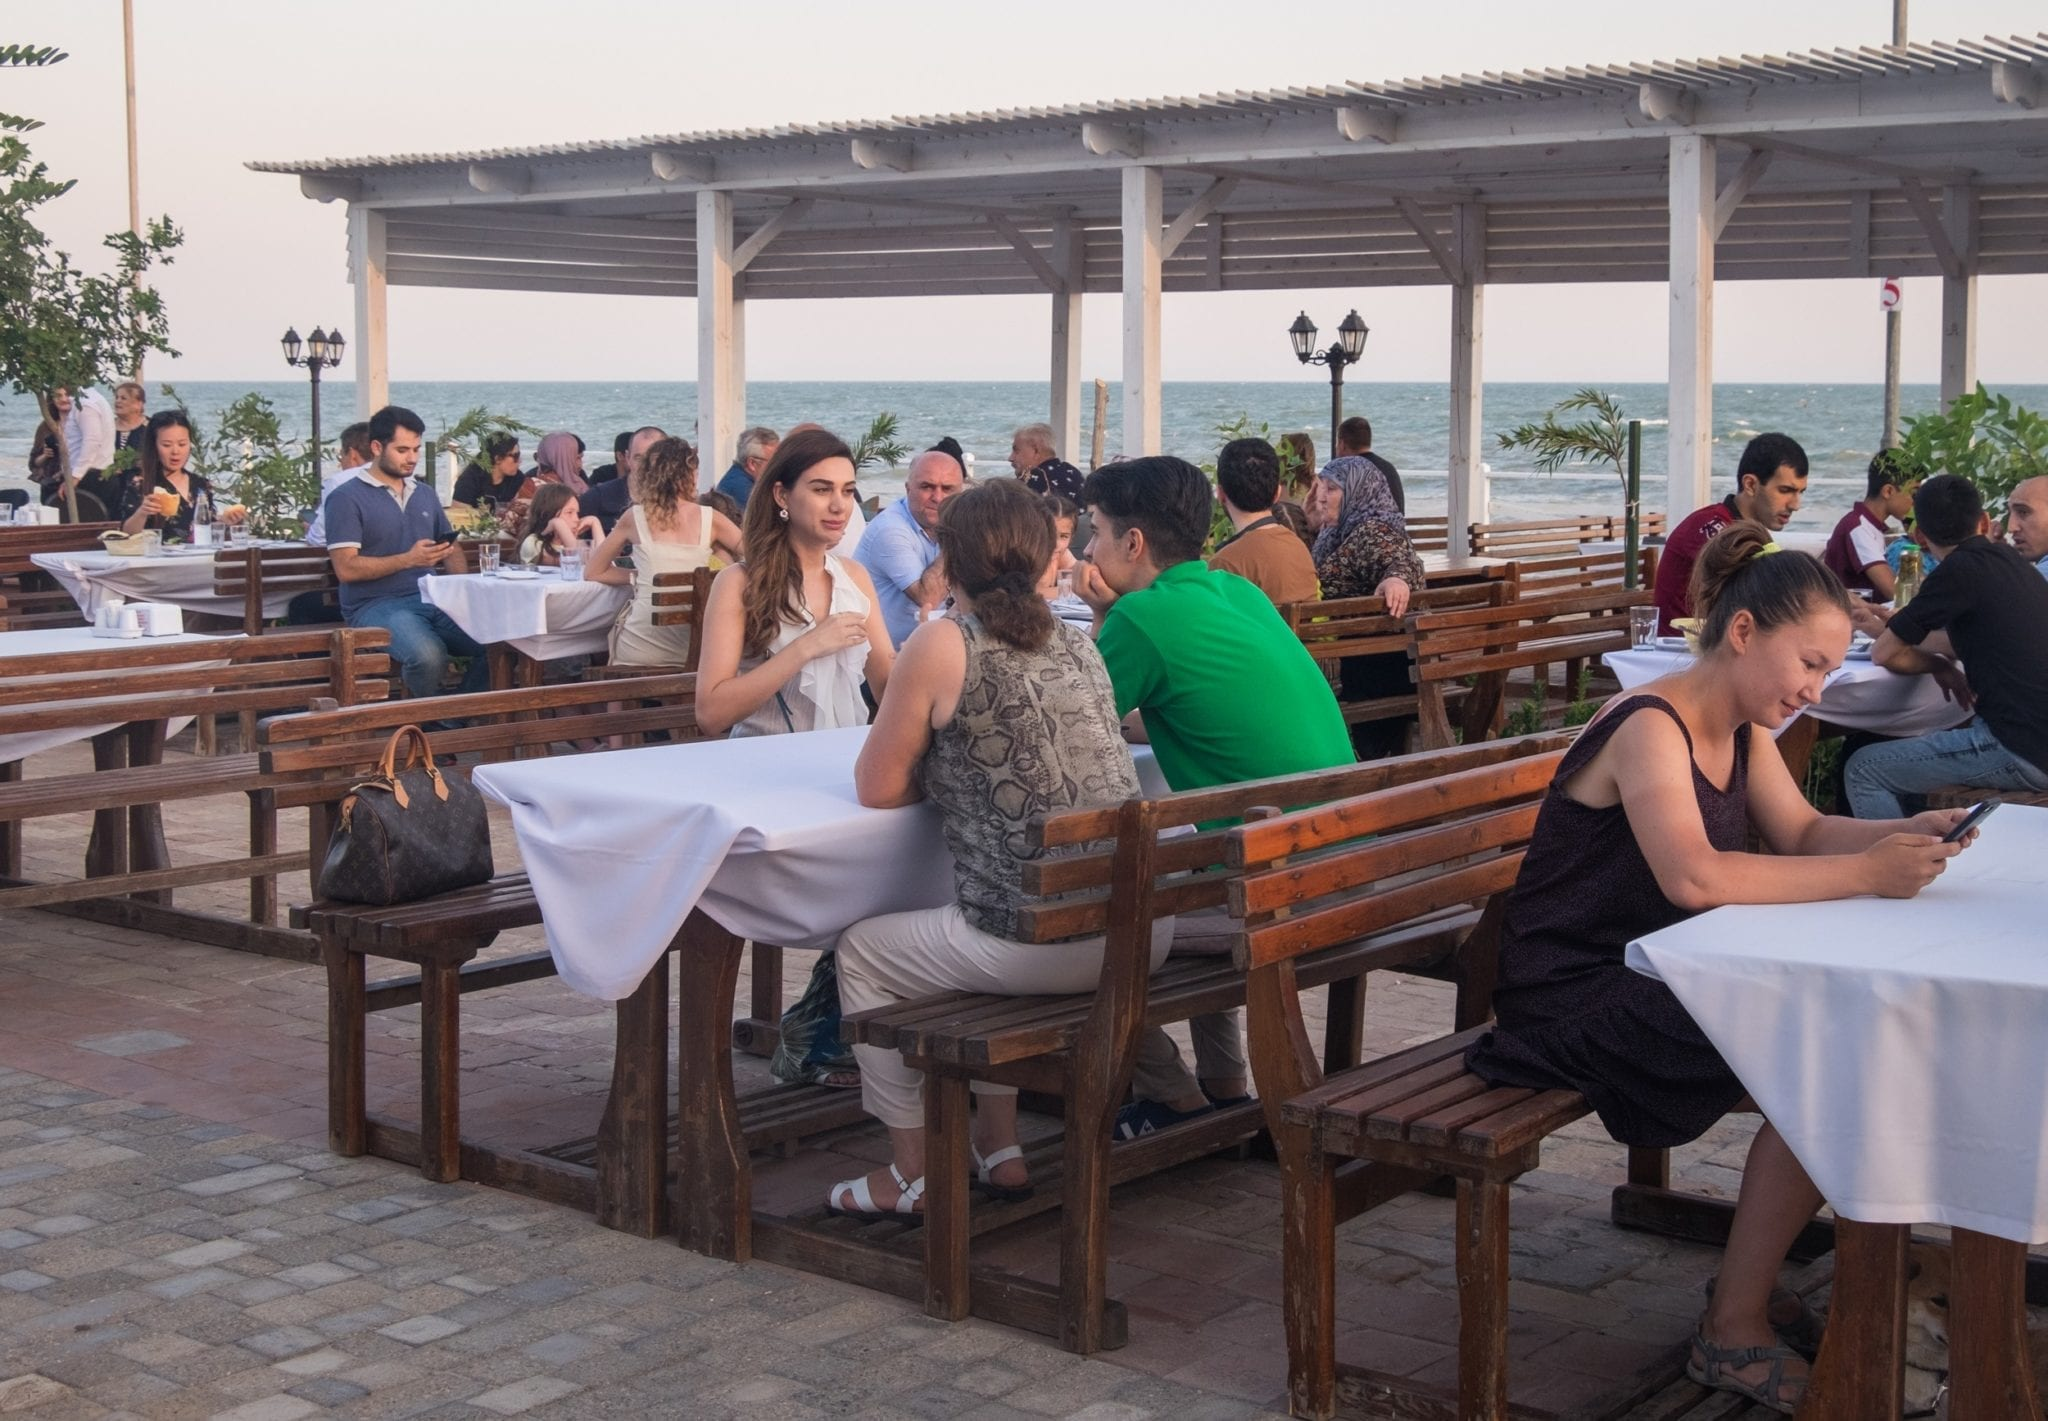 People sitting at outdoor tables at a restaurant on the Caspian Sea.